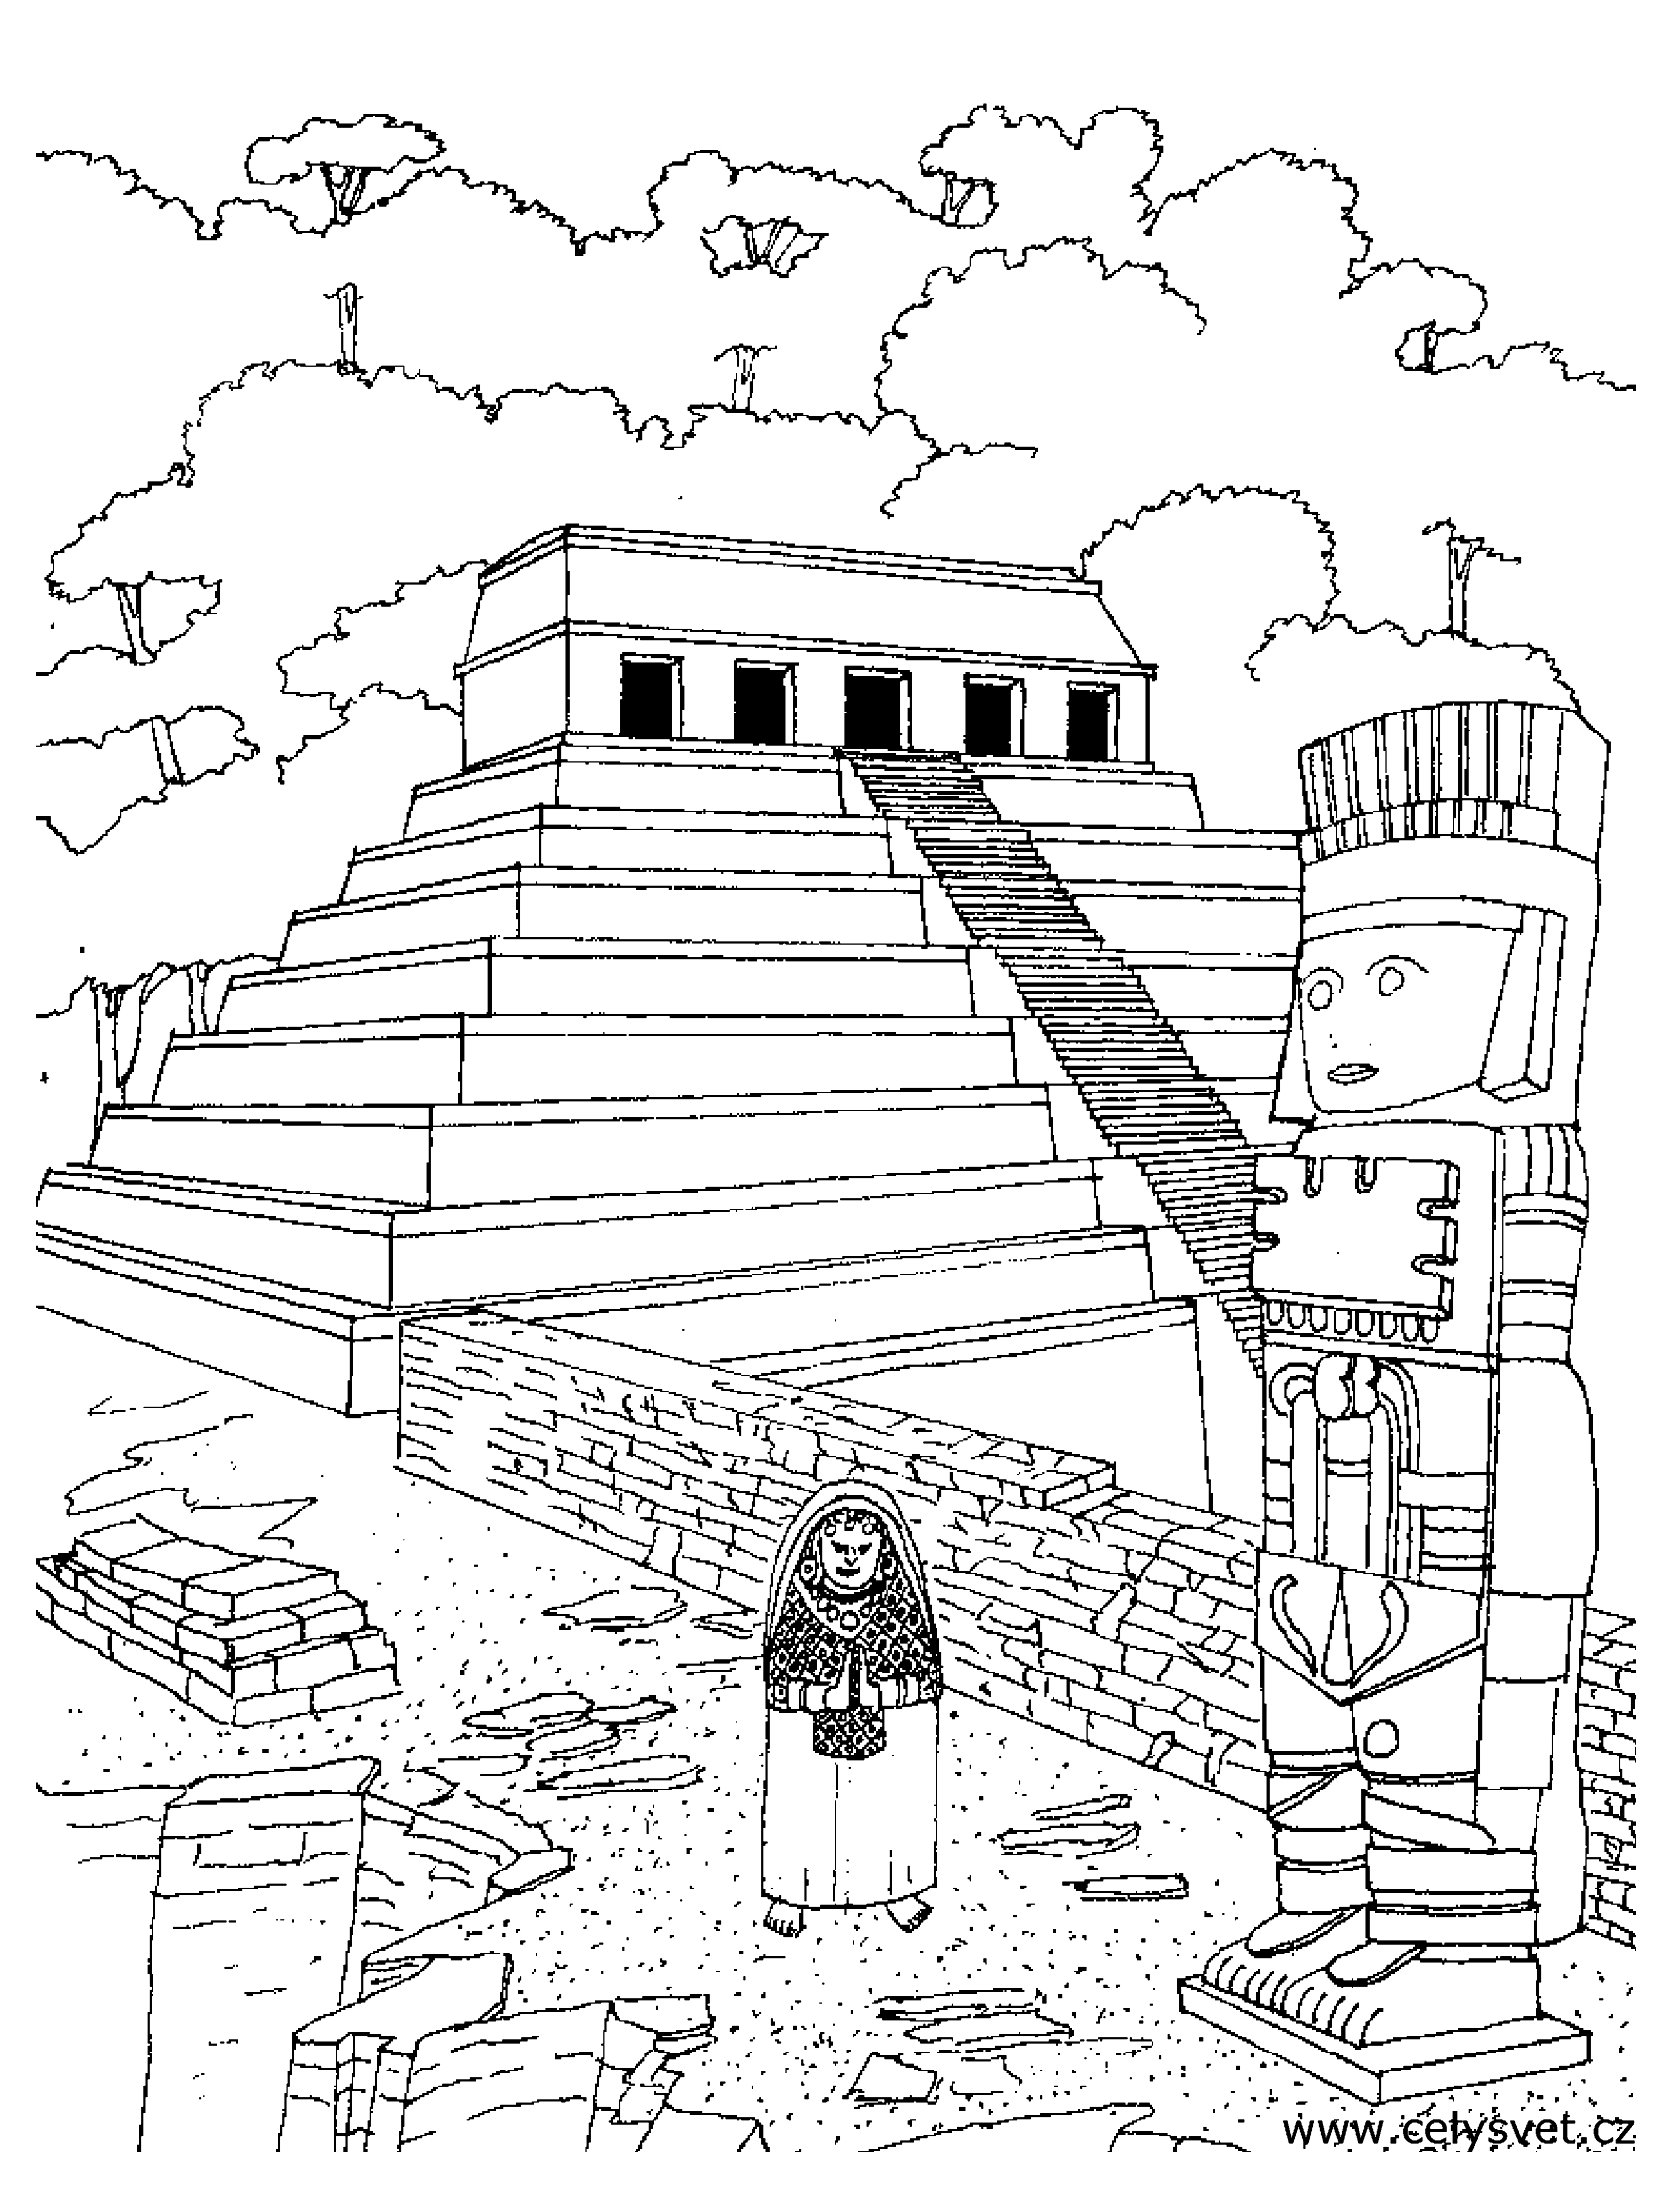 Temple aztec Mayans Incas Coloring pages for adults JustColor